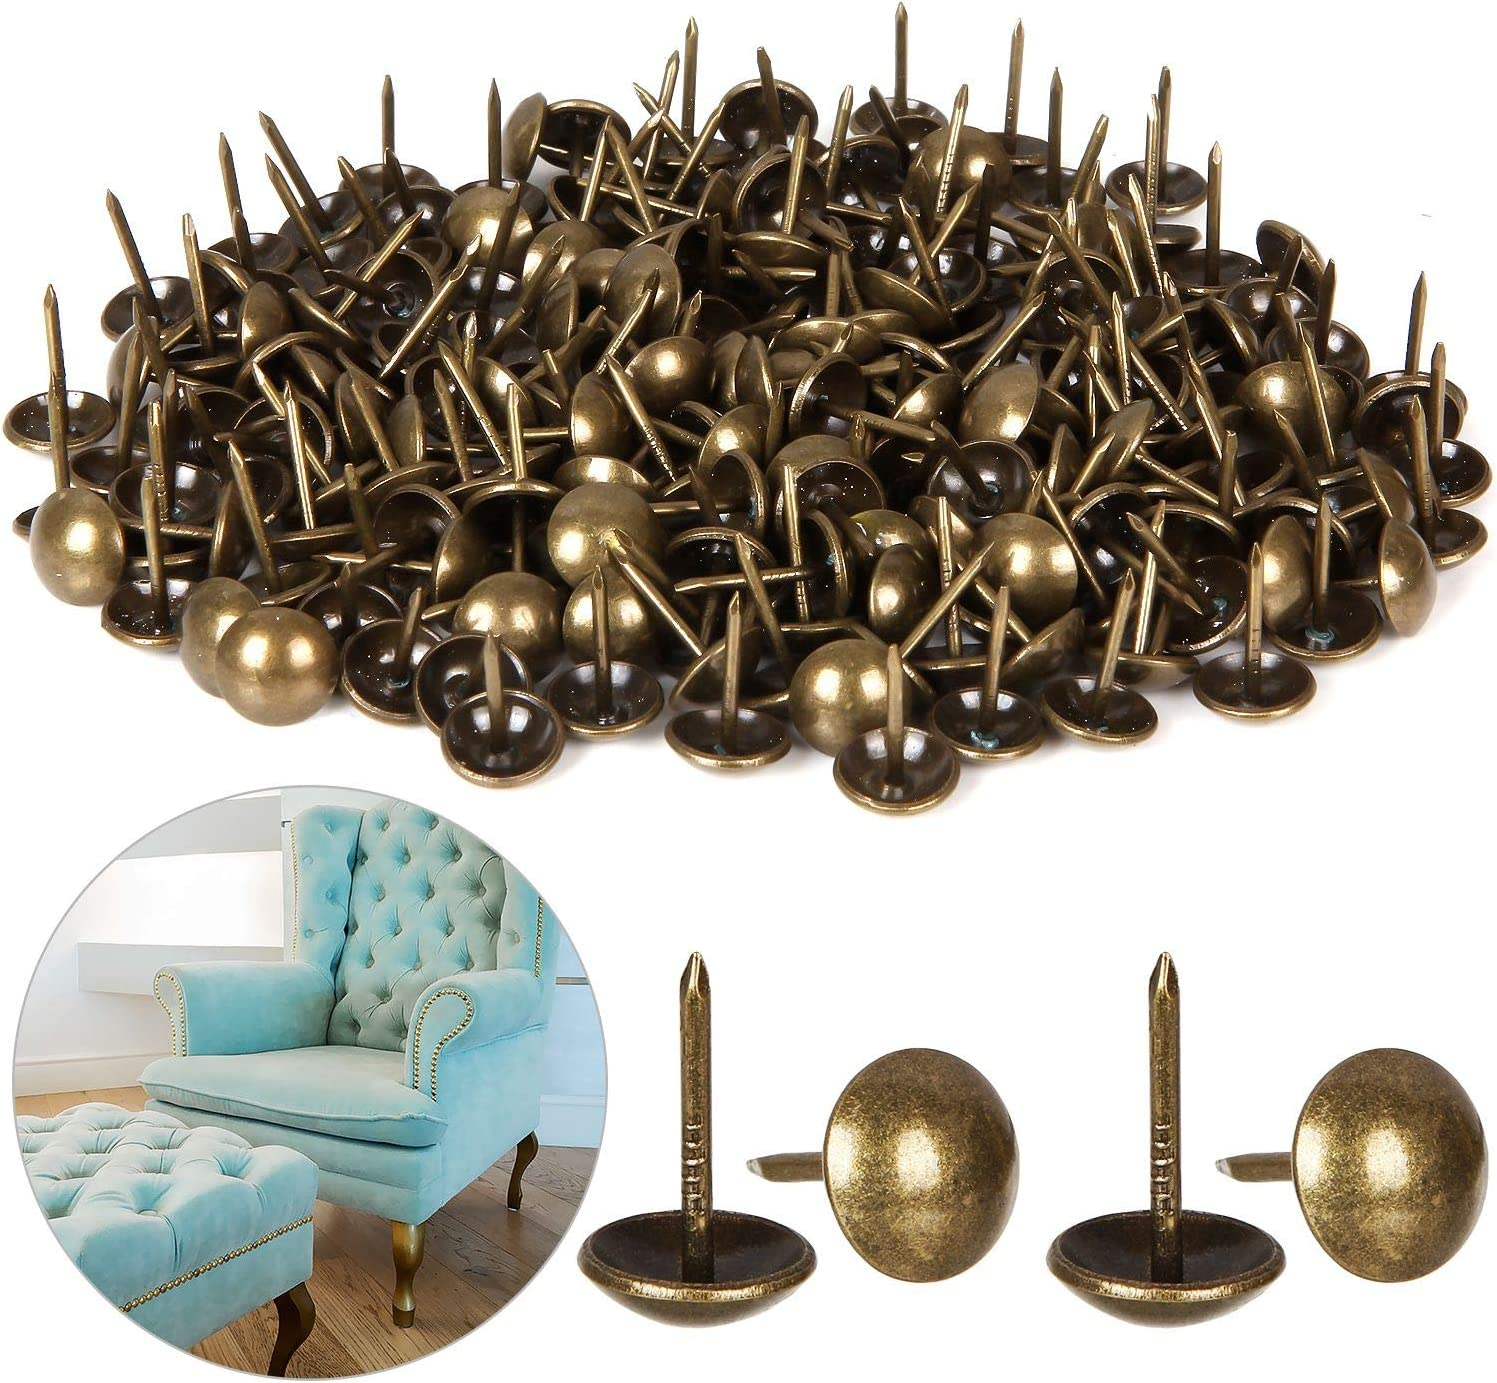 """500 Count Upholstery Tacks 7/16"""", Upholstery Nails, Furniture Nails Pins for Decorative Furniture or DIY Project"""